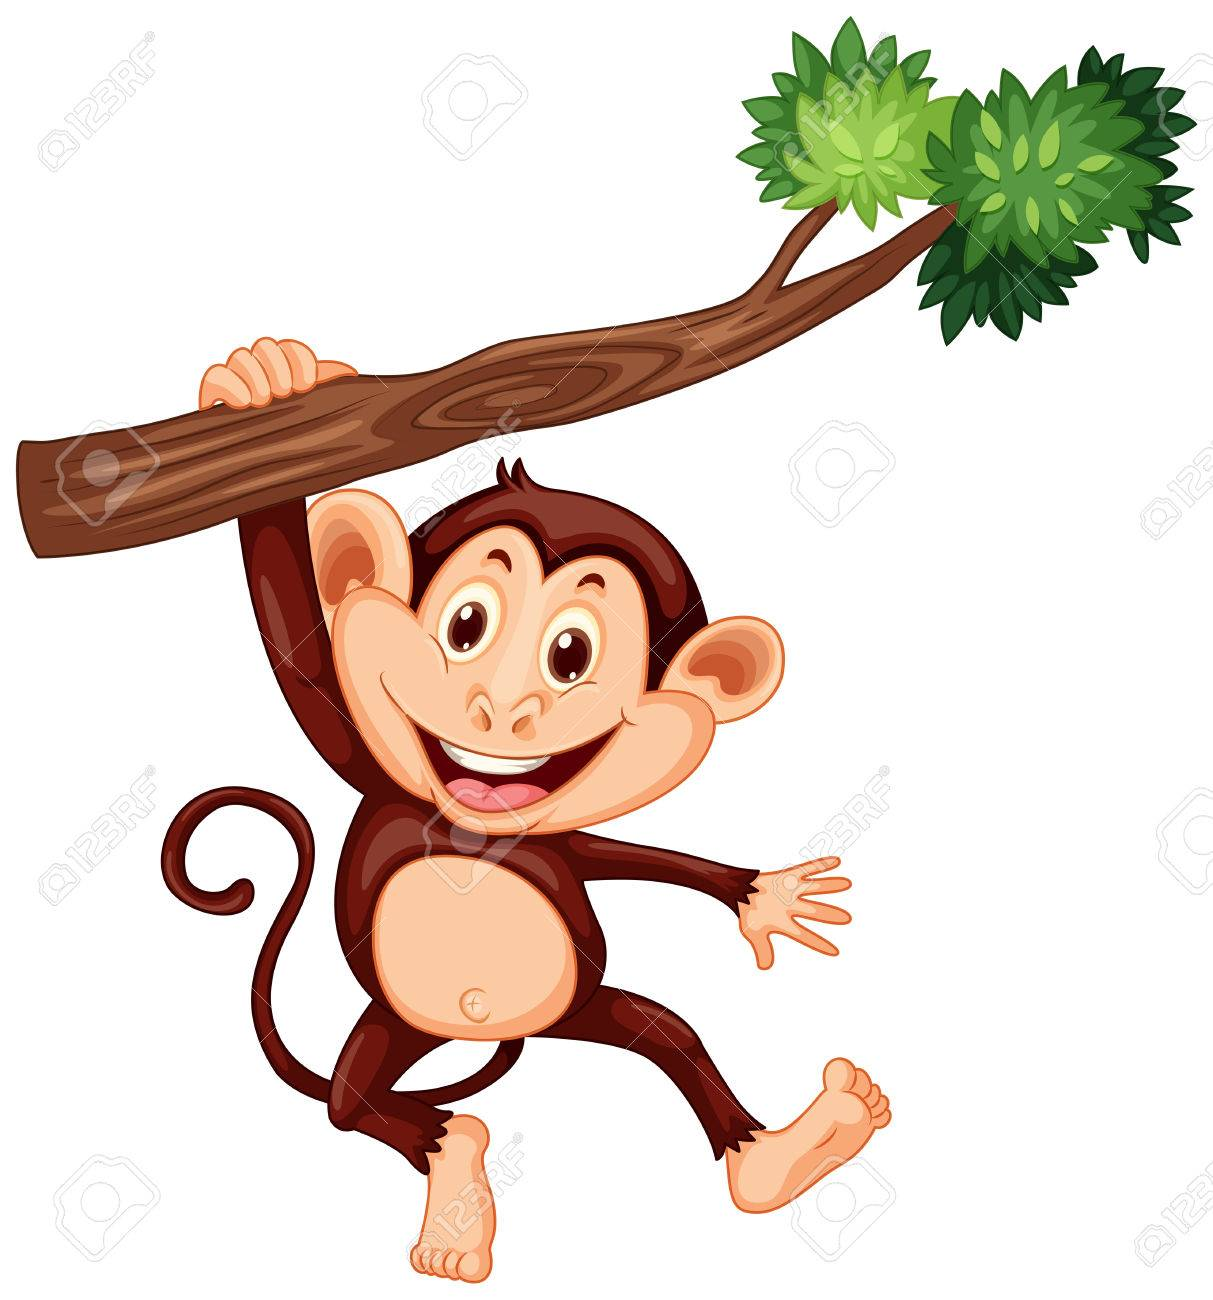 Cute monkey hanging on the branch illustration - 51862479